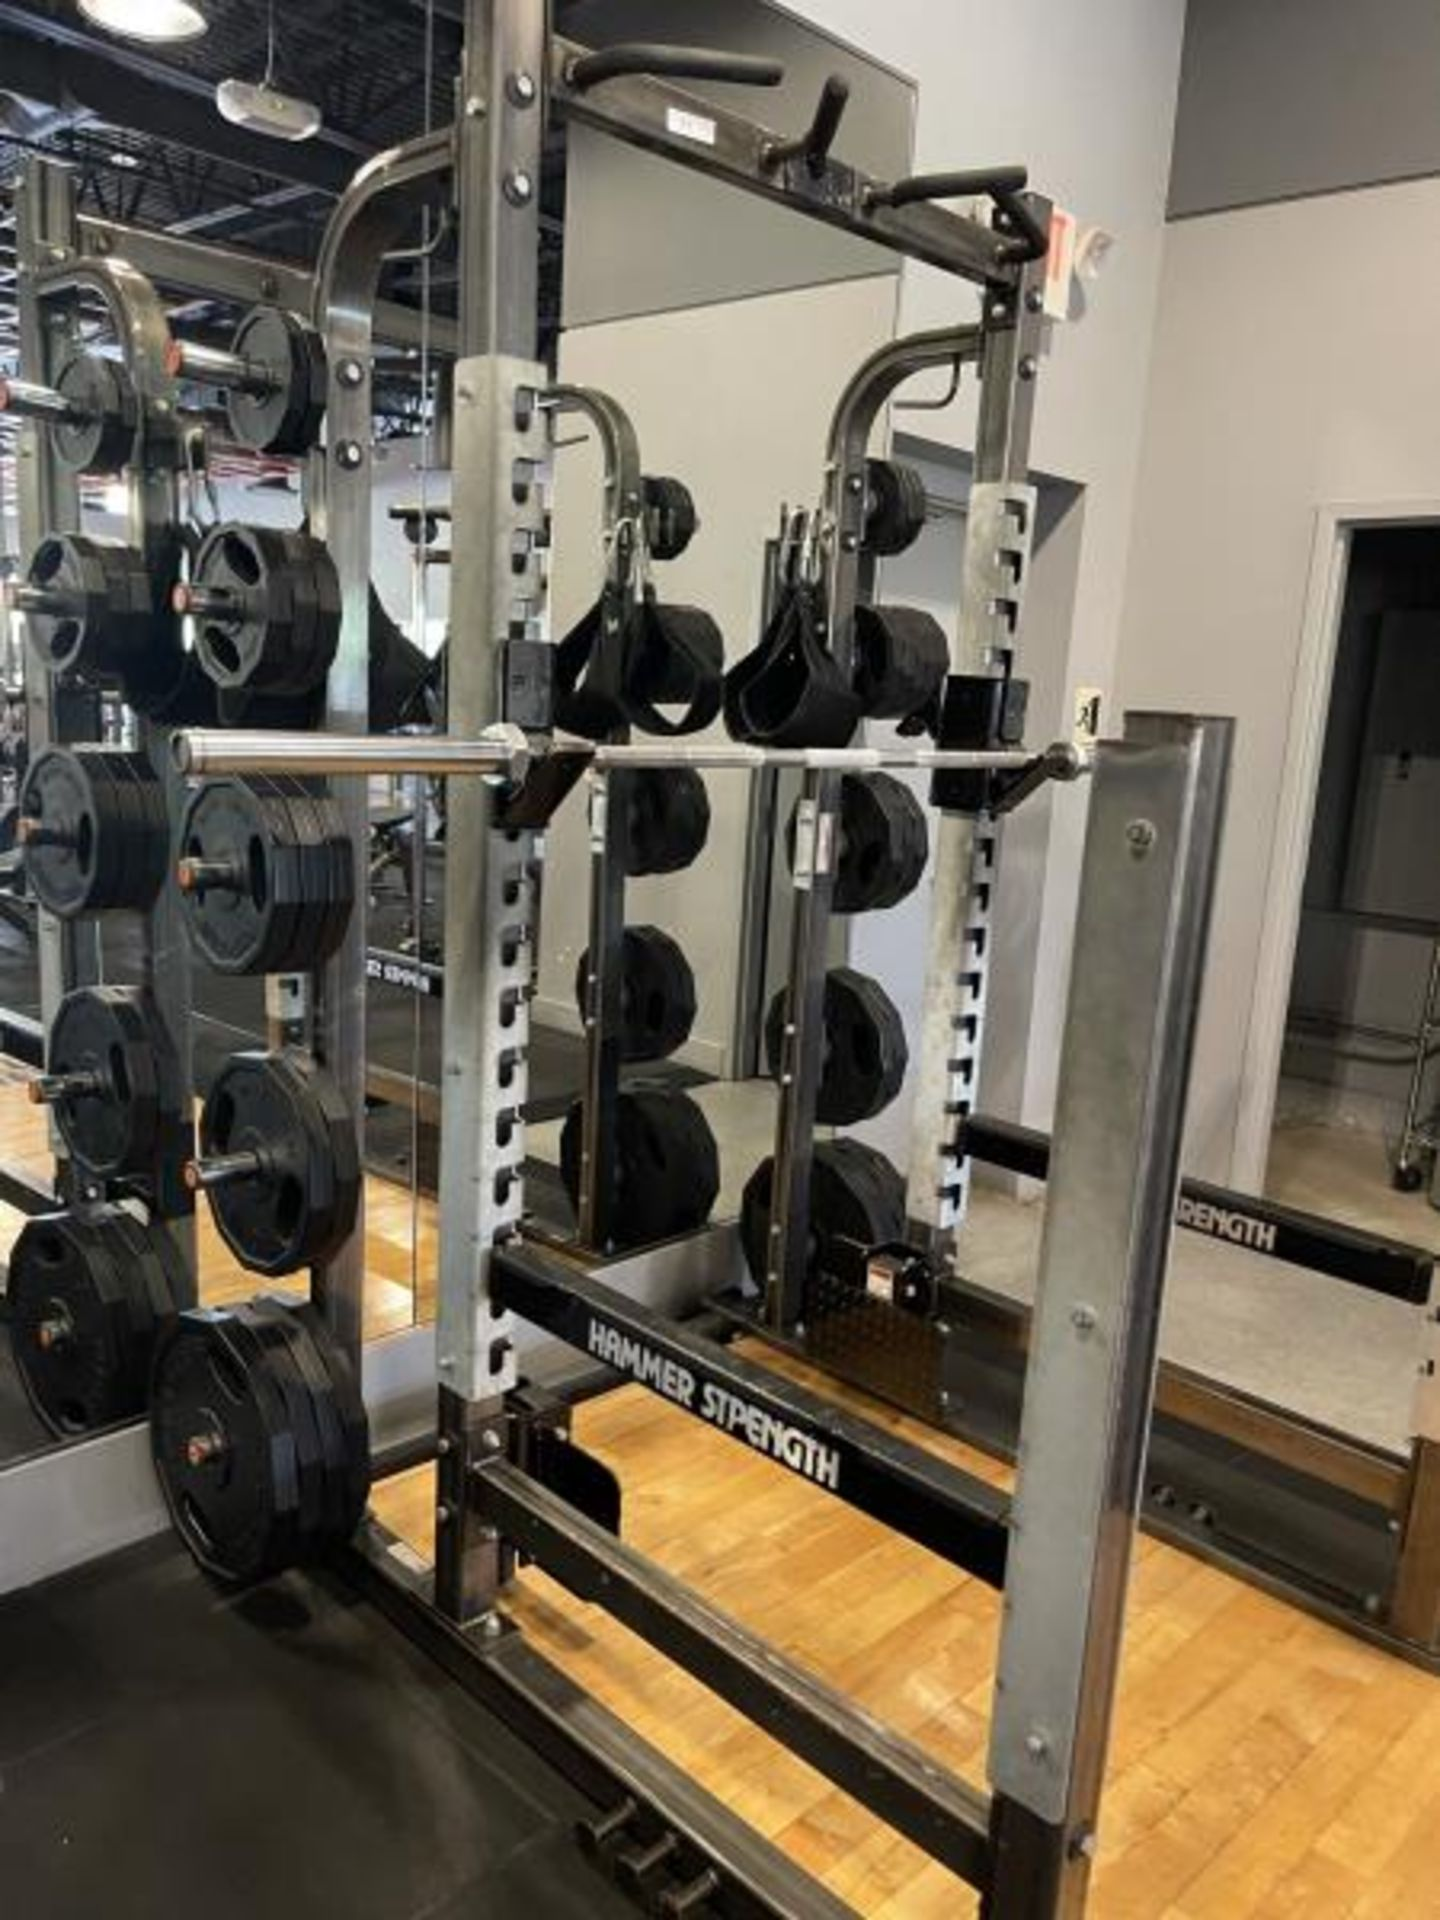 Hammer Strength with Wood Floor, Rack, Iron Grip Weight Plates M: HDMR8/B01 - Image 7 of 7